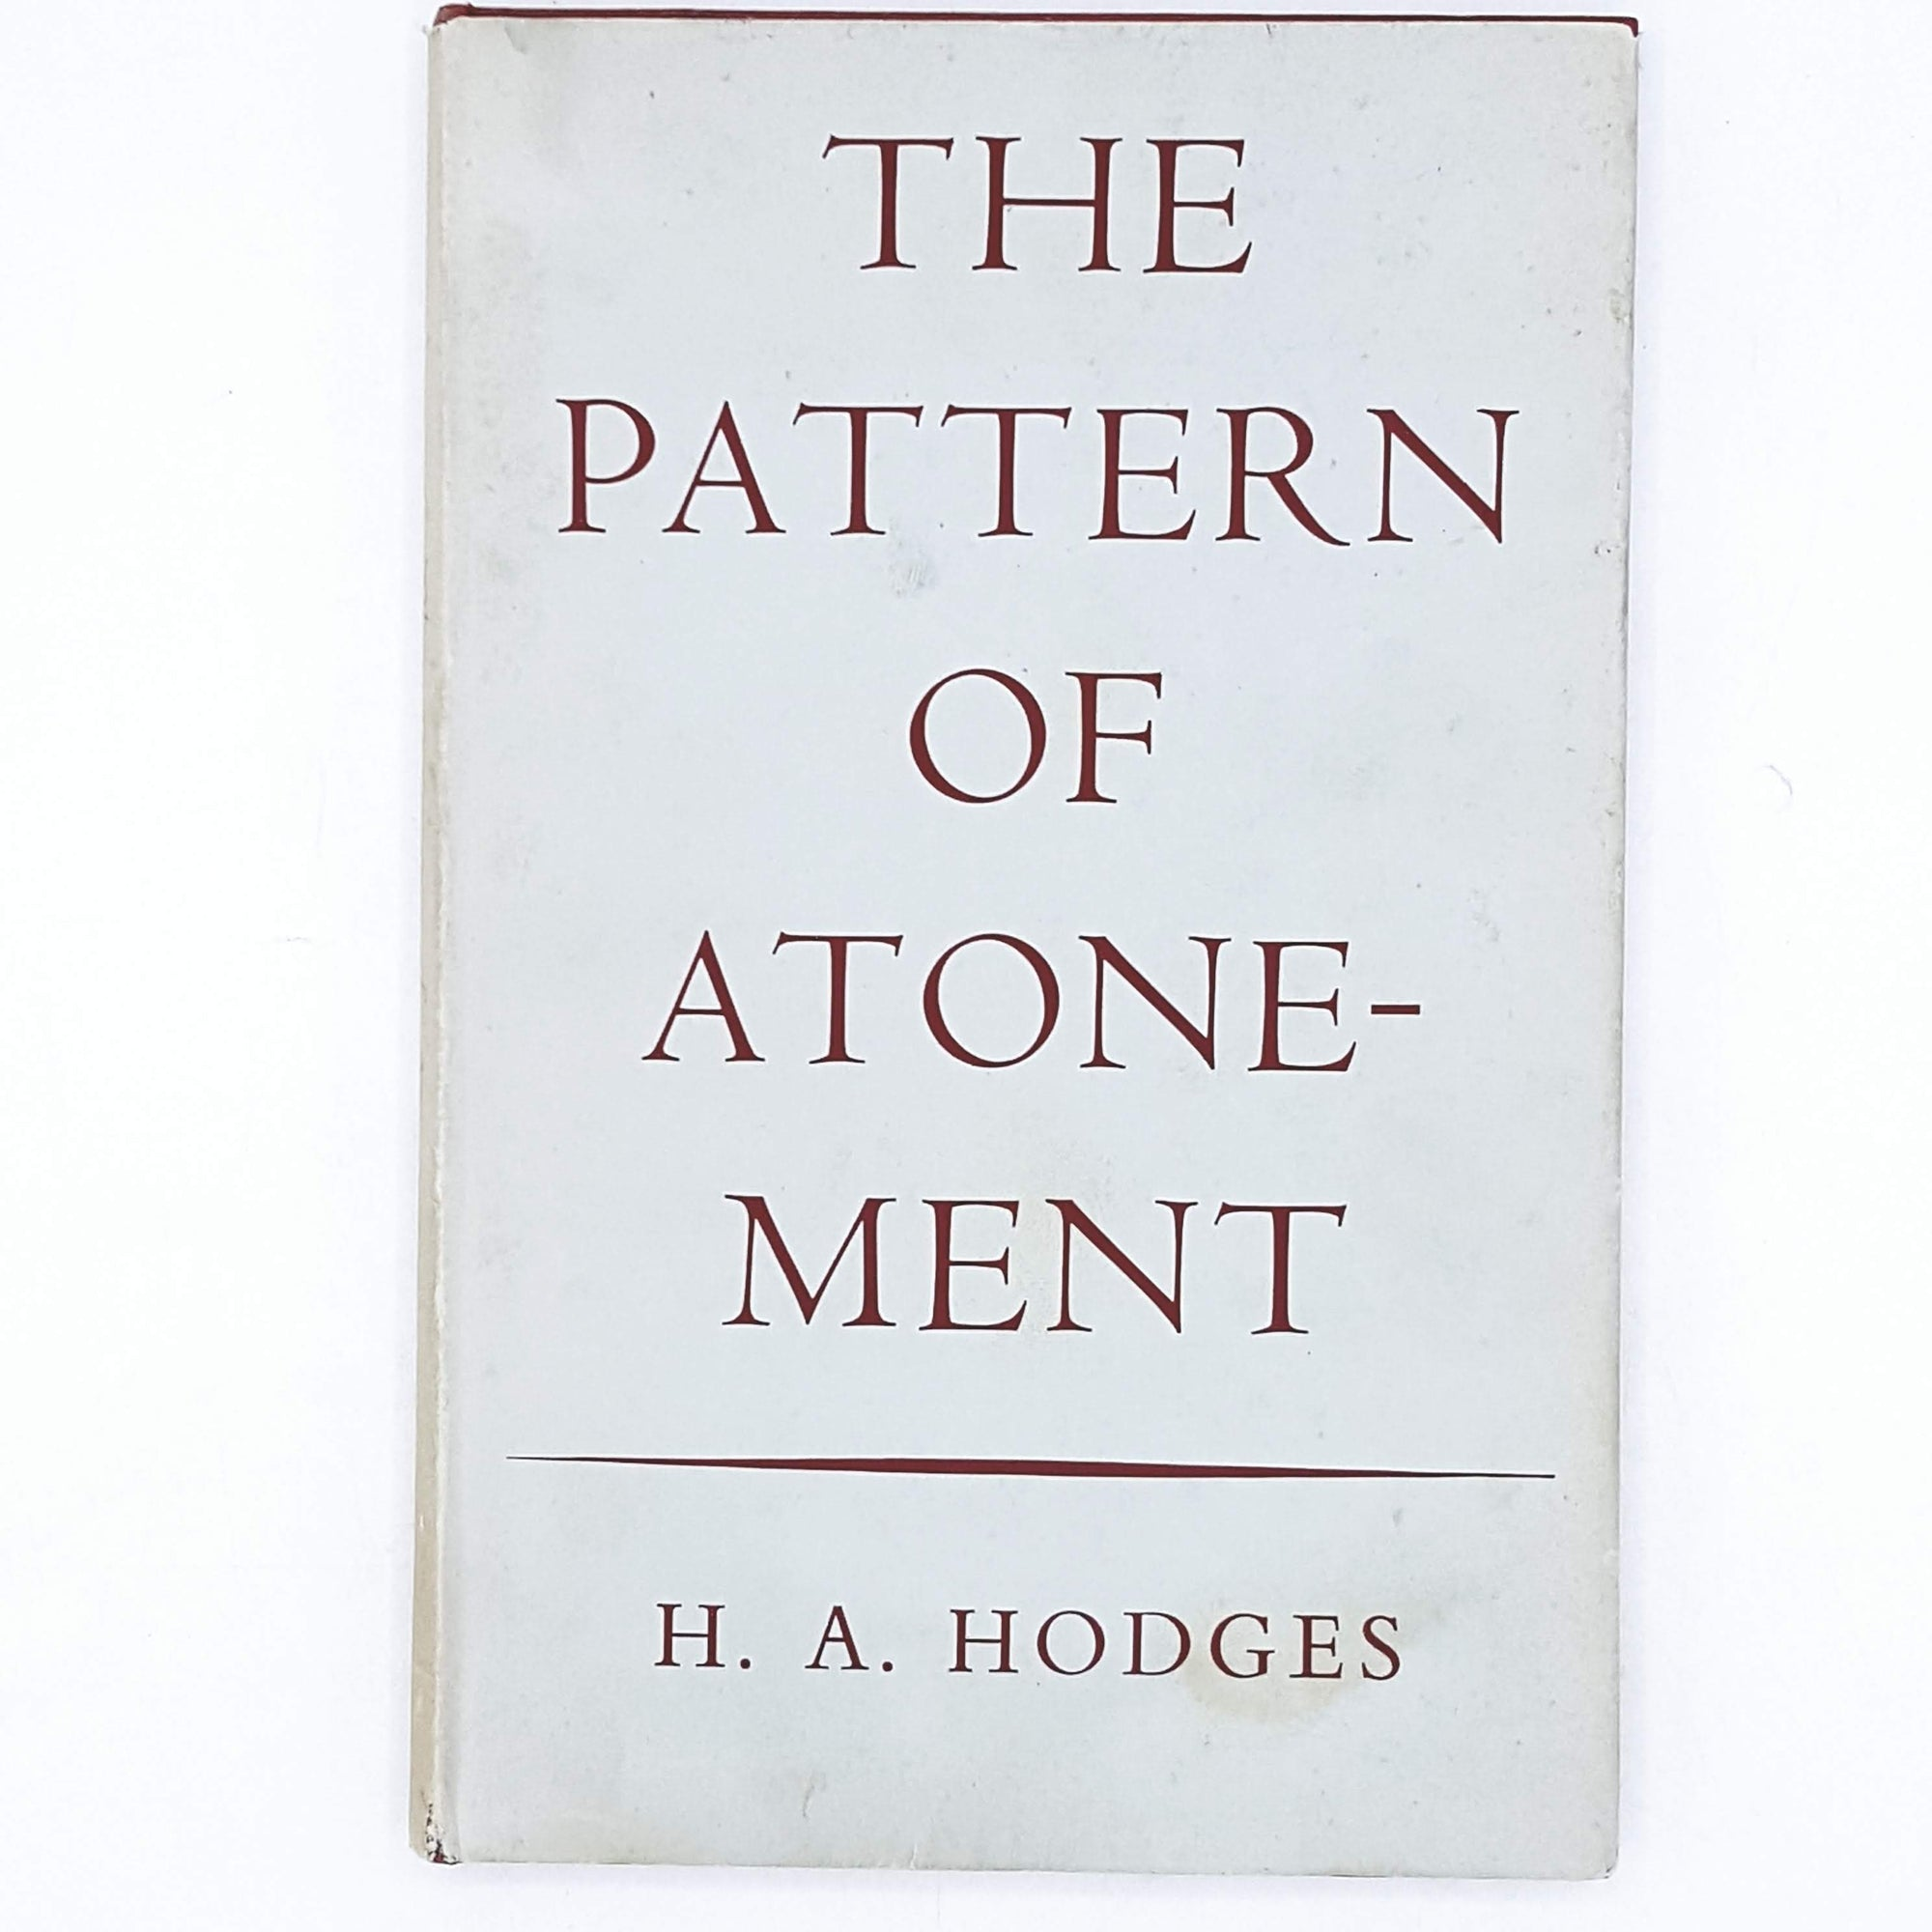 The Pattern of Atonement by H. A. Hodges 1957